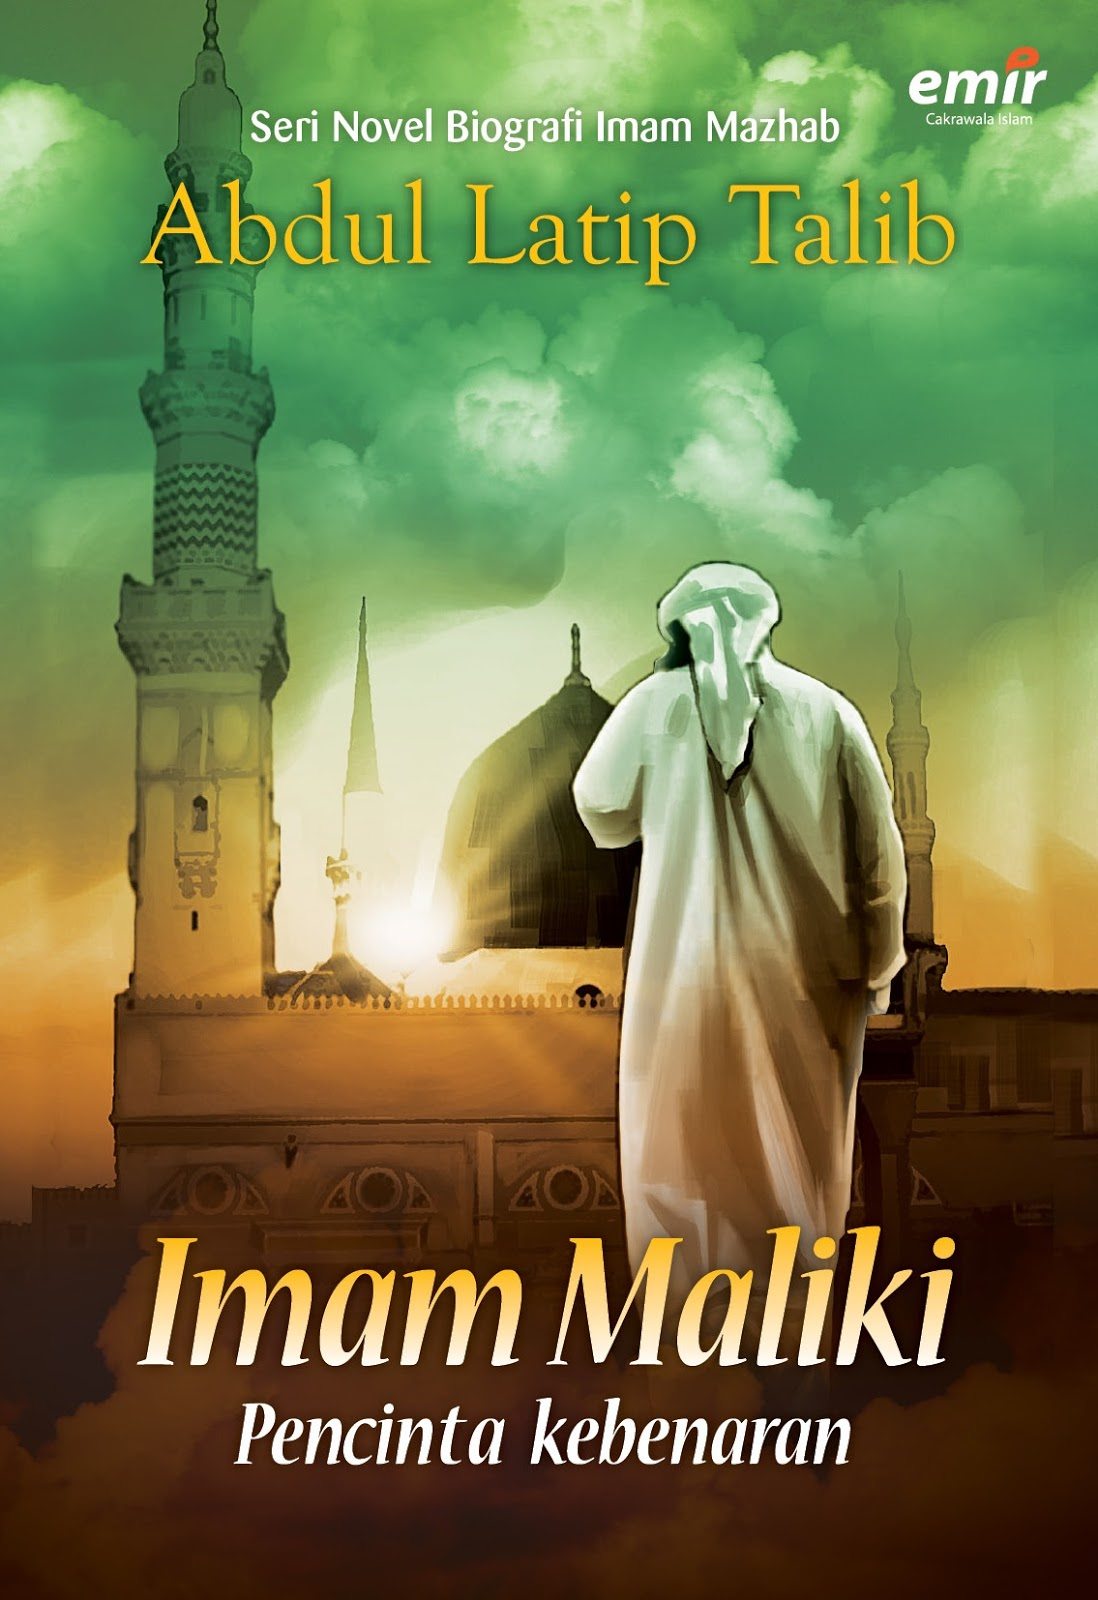 imaam maalik As one of the greatest of the scholars, al-imaam maalik, is so commonly quoted as saying: مَا مِنَّا إِلاَّ رَادٌّ وَمَرْدُودٌ عَلَيْهِ meaning: every single one of us (every scholar) is either criticizing / refuting, or being criticized / refuted.